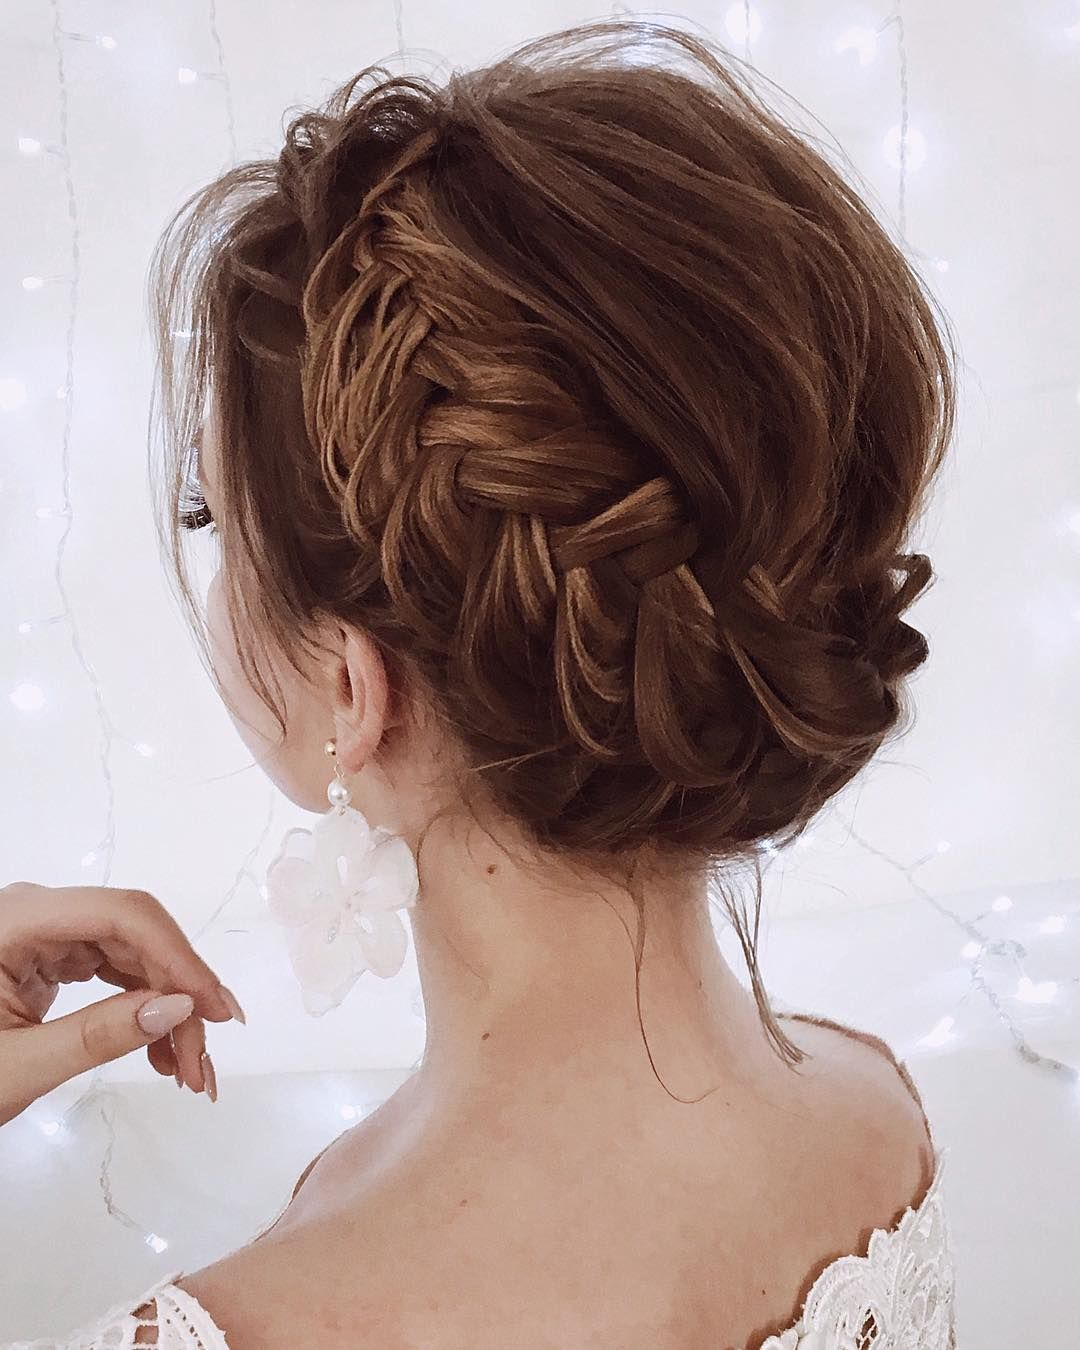 Amazing Wedding Hairstyles Long Hair: 55 Amazing Updo Hairstyles With The Wow Factor